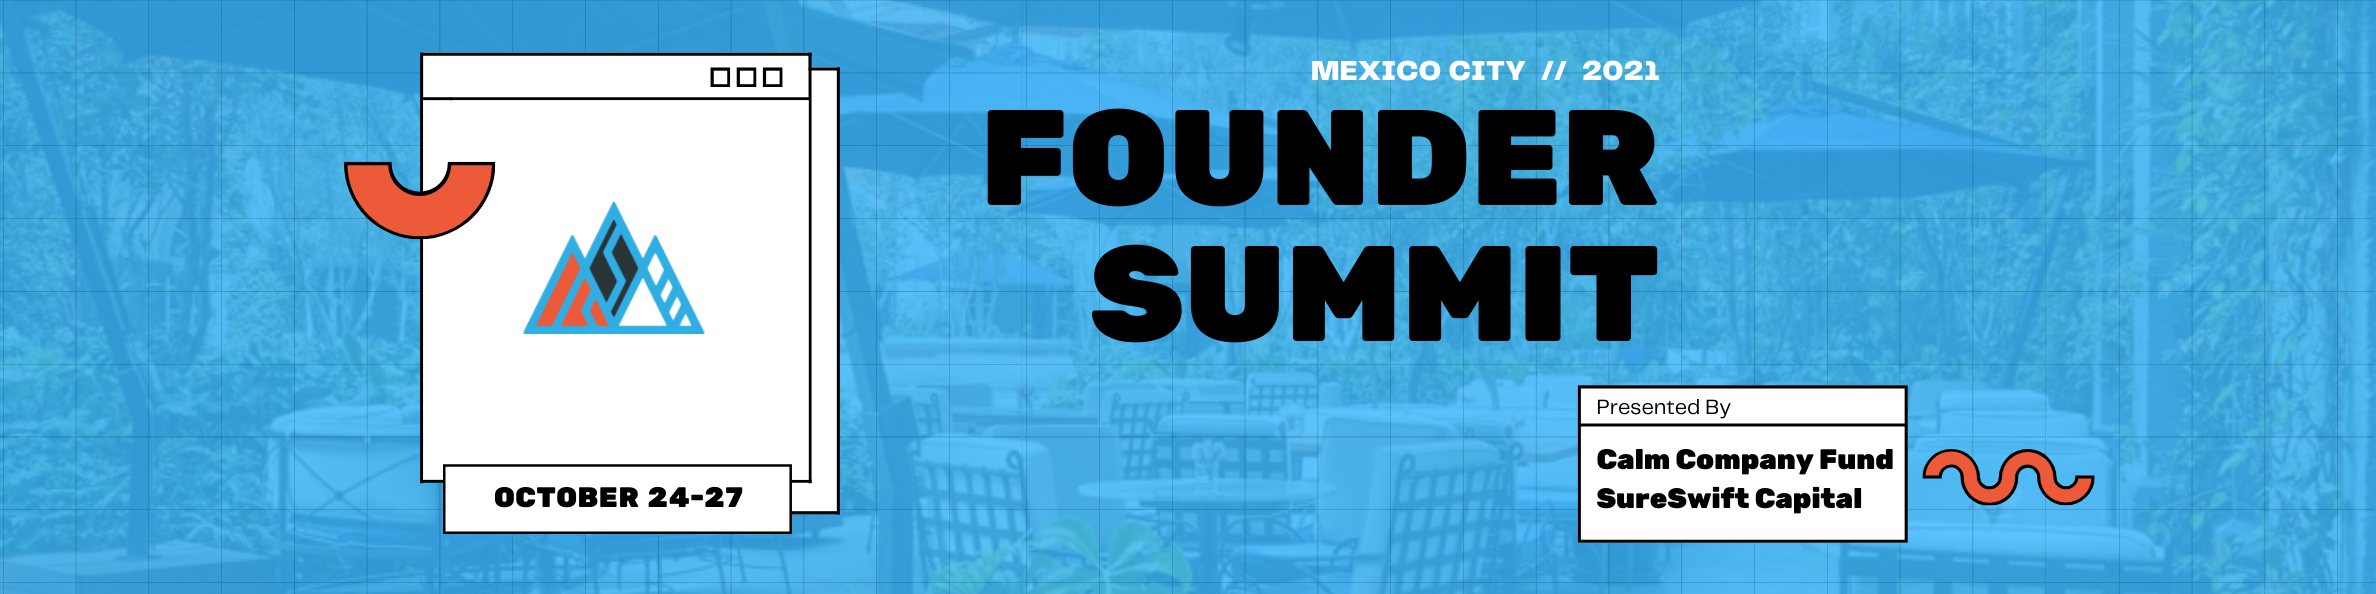 Mexico City 2021 Founder Summit Presented by Calm Company Fund SureSwift Capital October 24-27